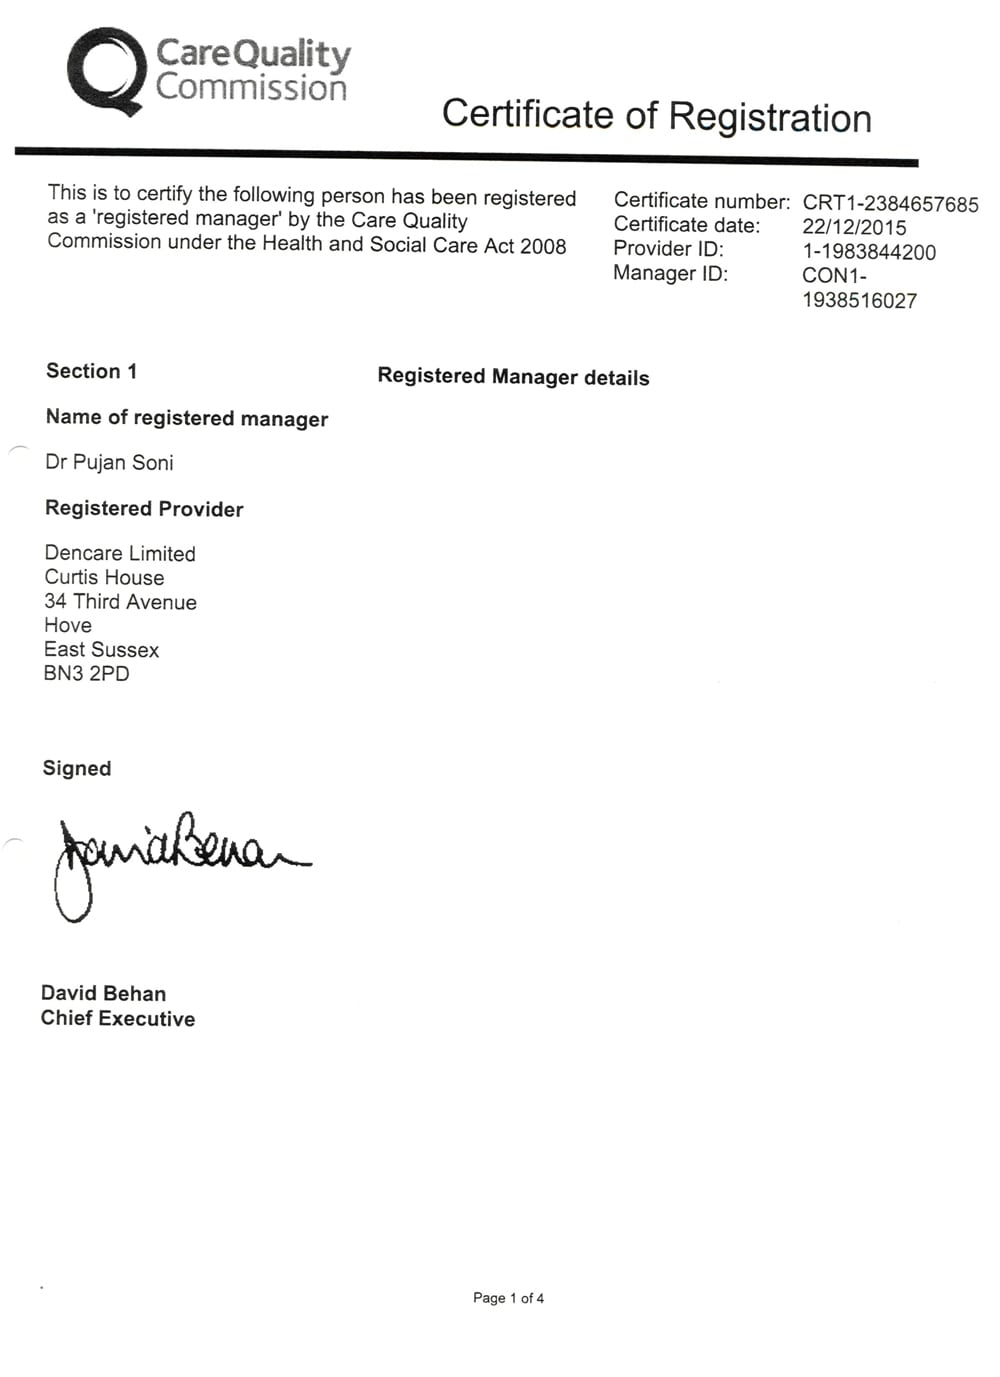 CQC registration documents 001